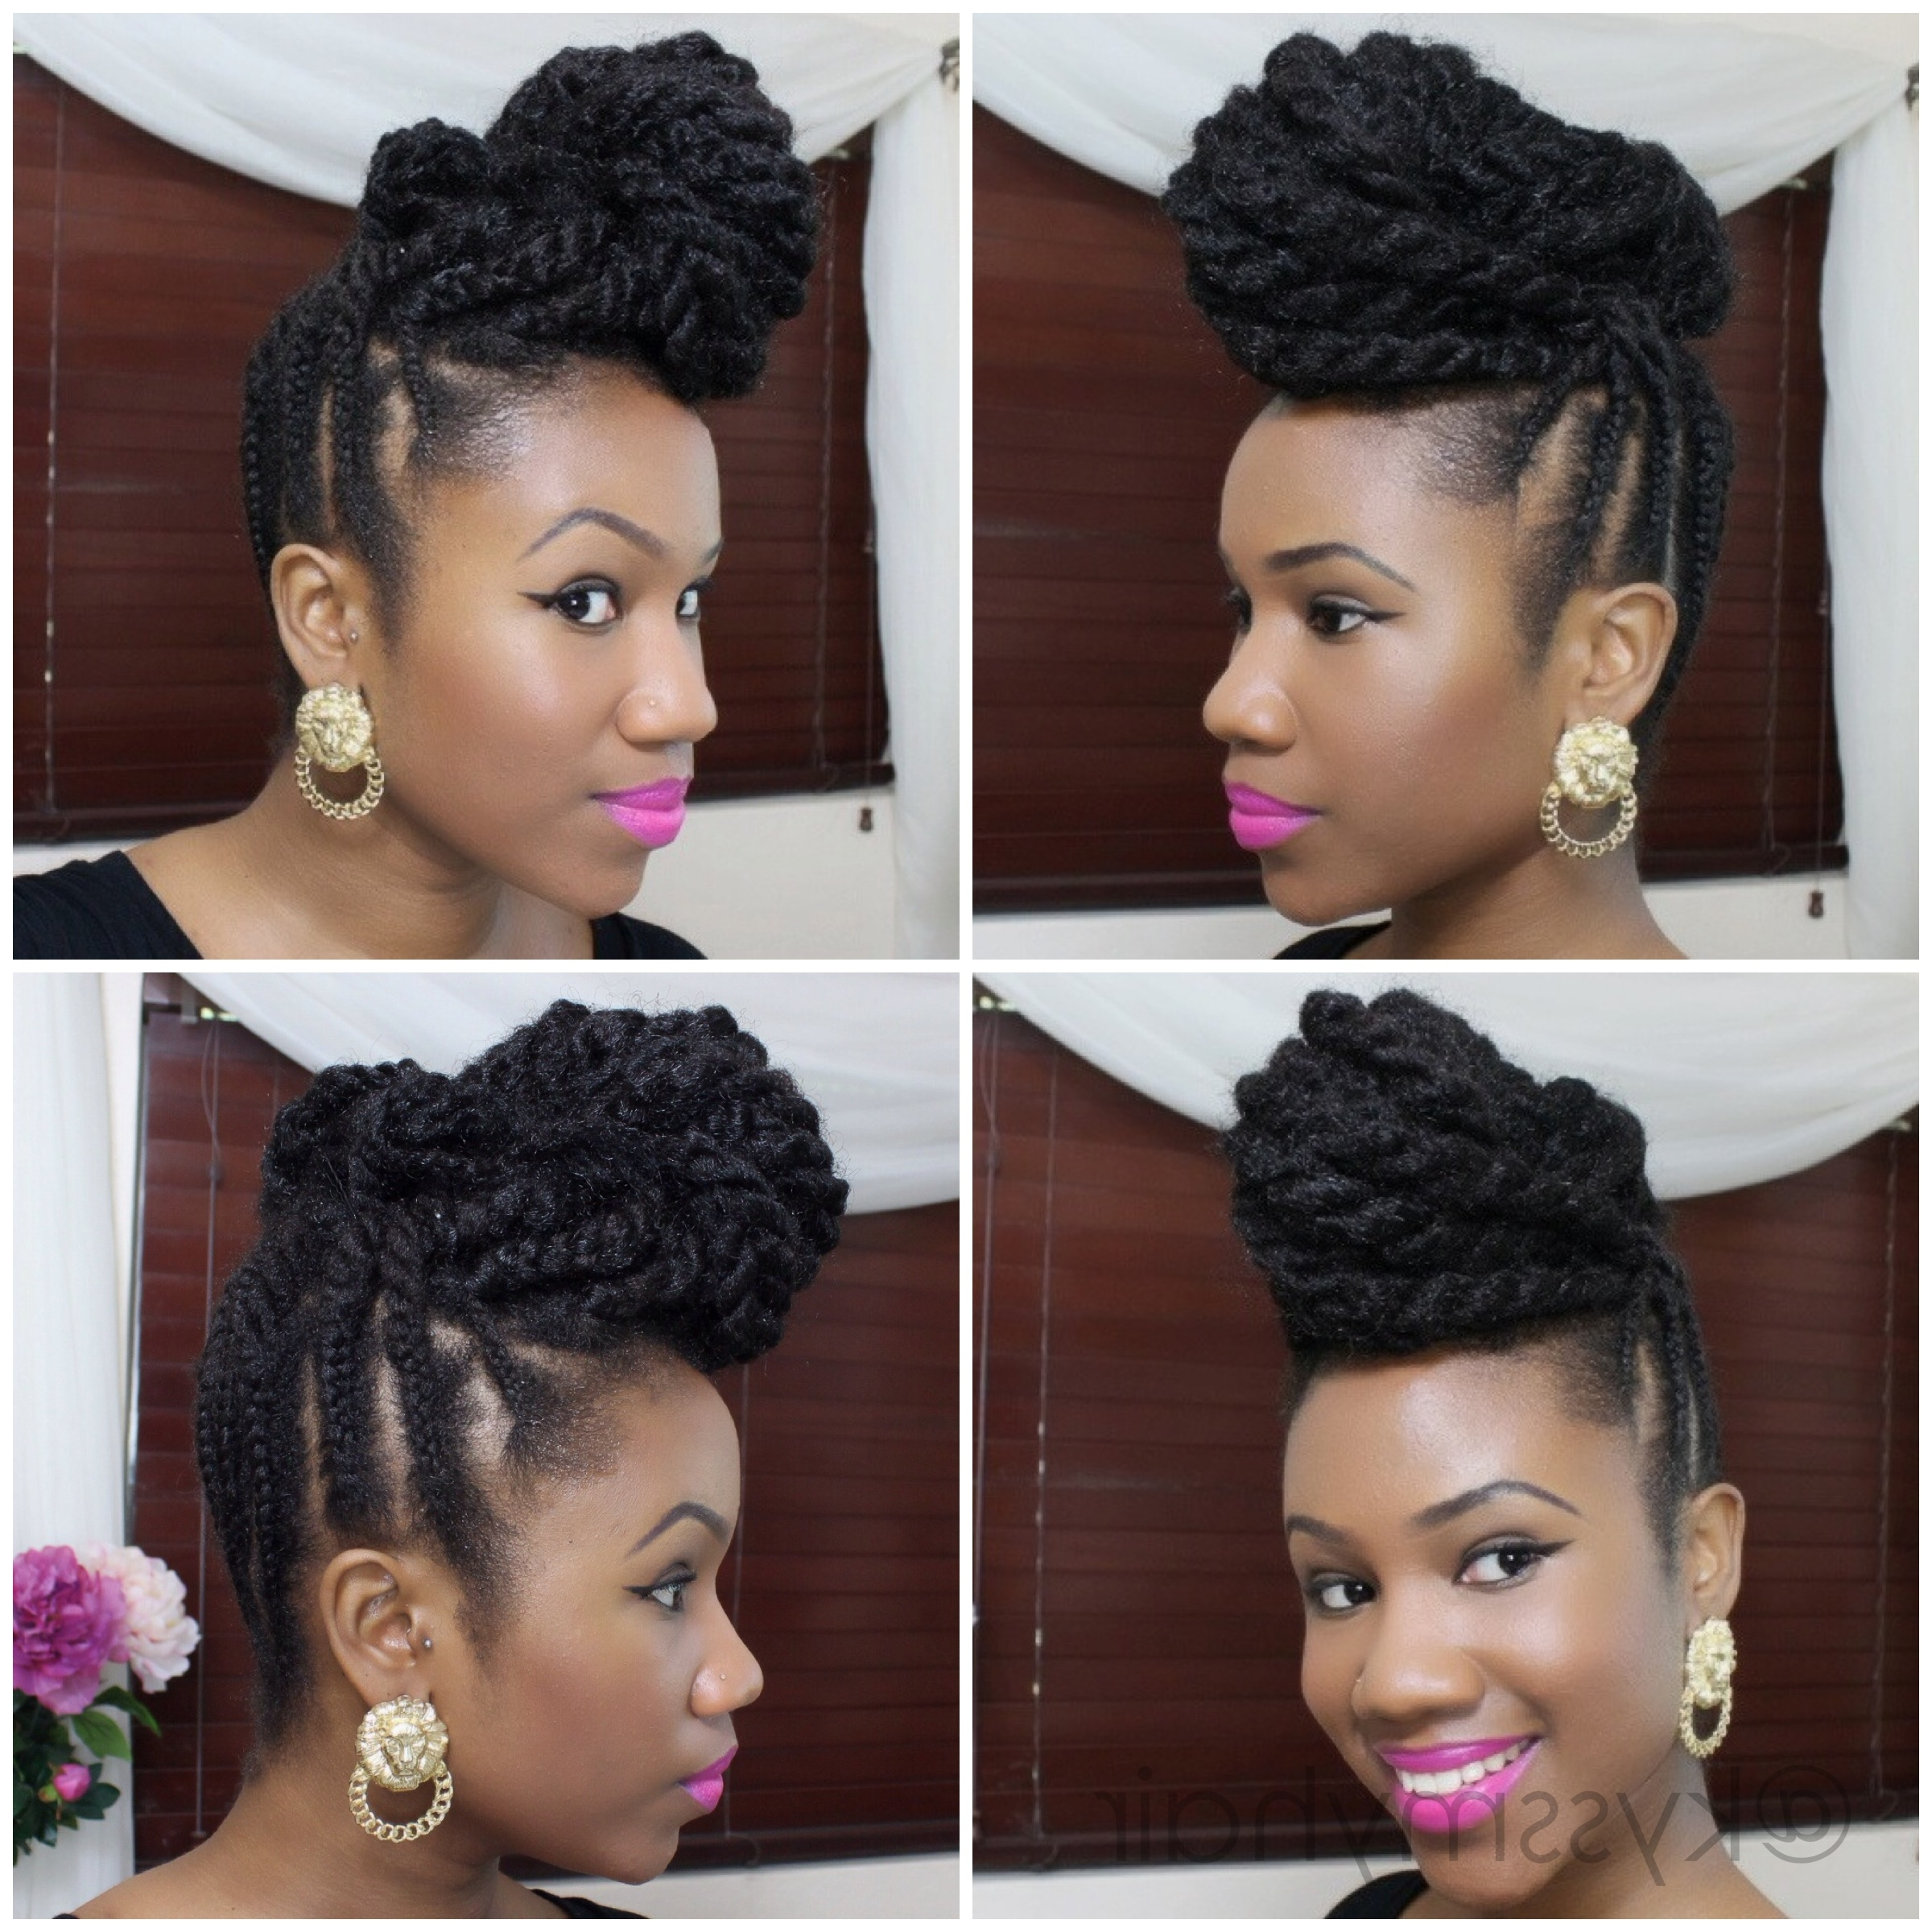 Braided Updo On Natural Hair Using Marley Hair | Kyss My Hair | Kyss Pertaining To African Hair Updo Hairstyles (View 7 of 15)